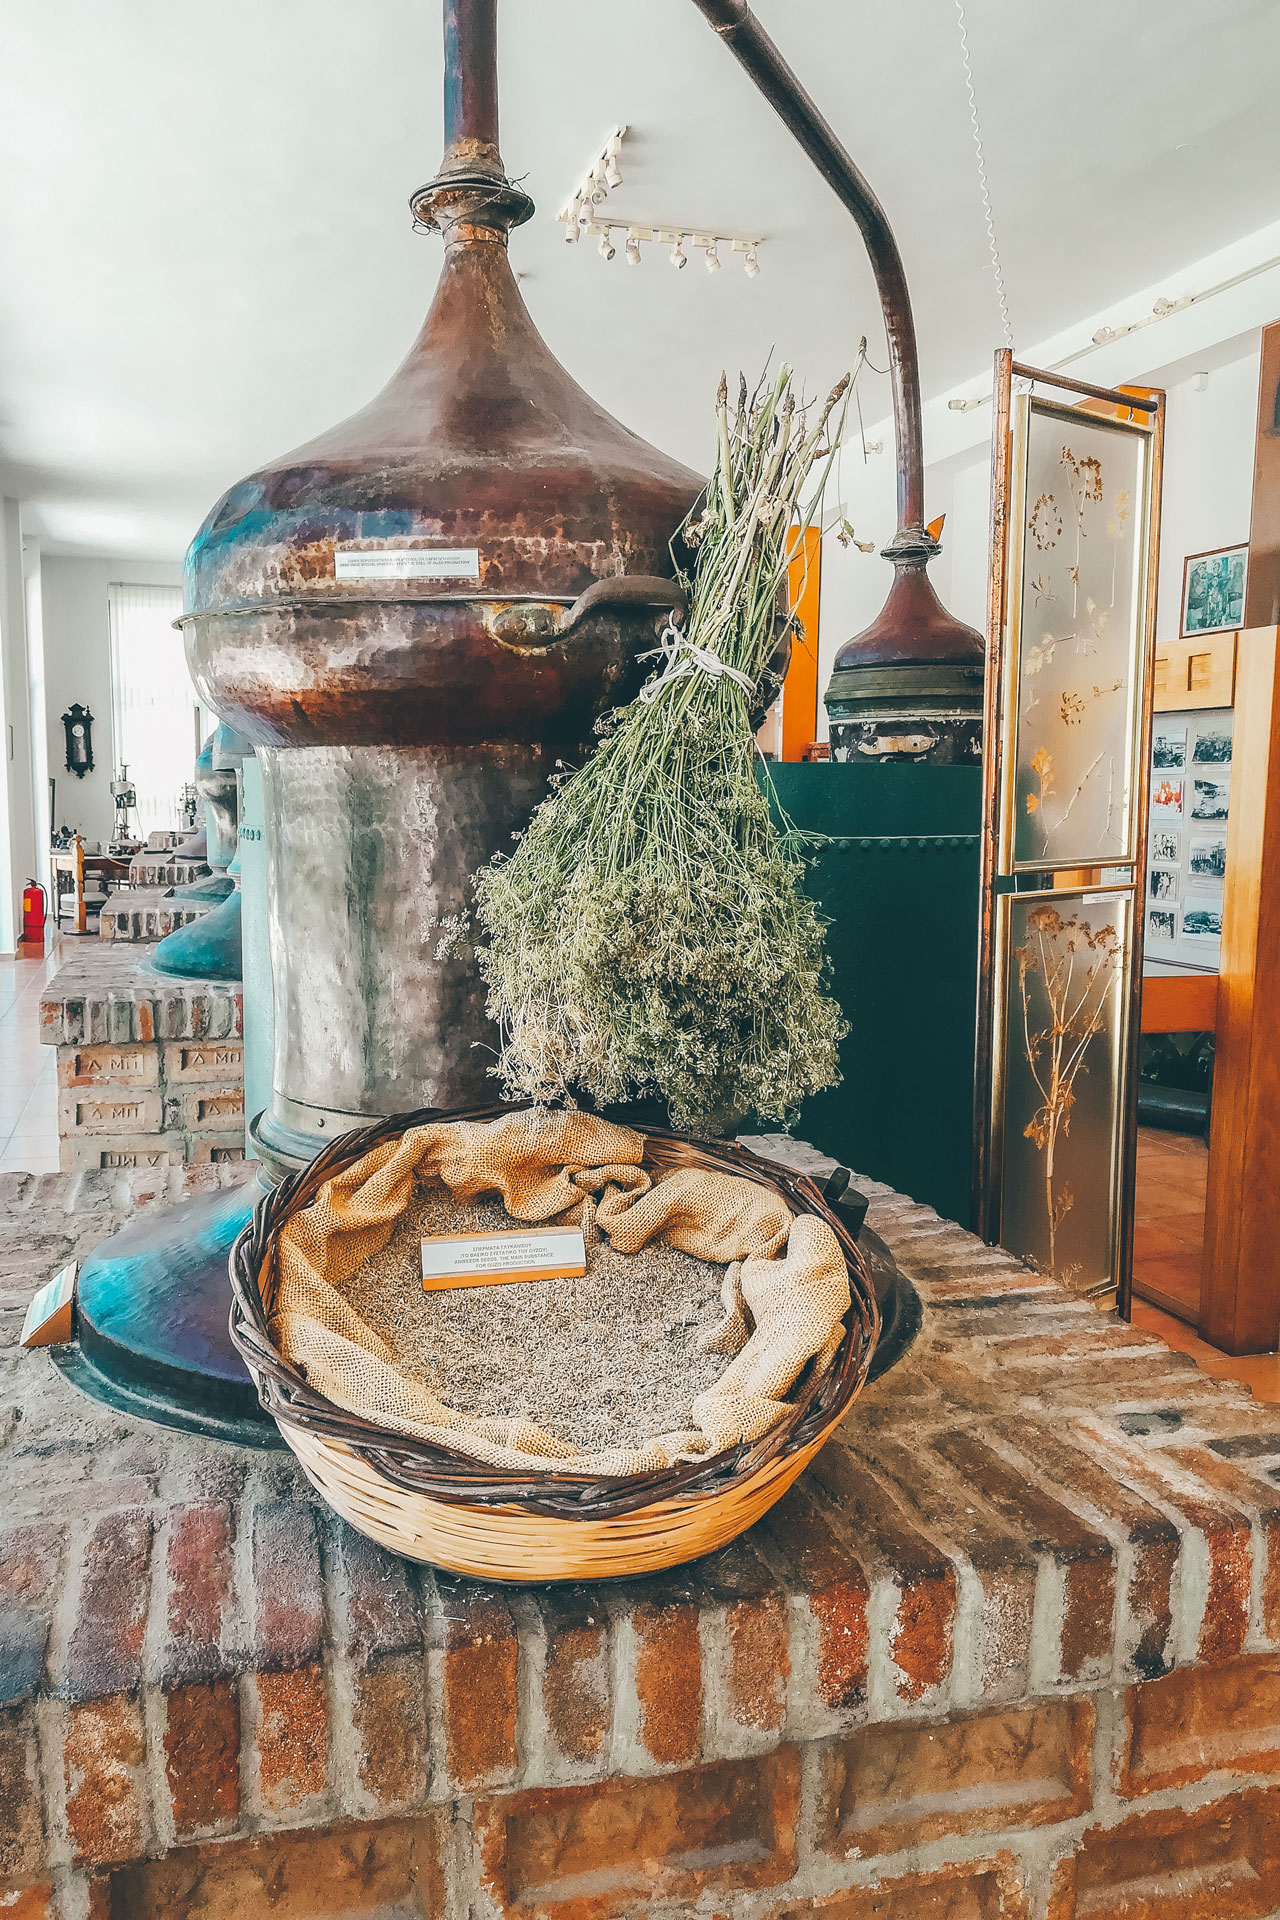 Visiting the Plomari ouzo distilleries can be done at any time of year